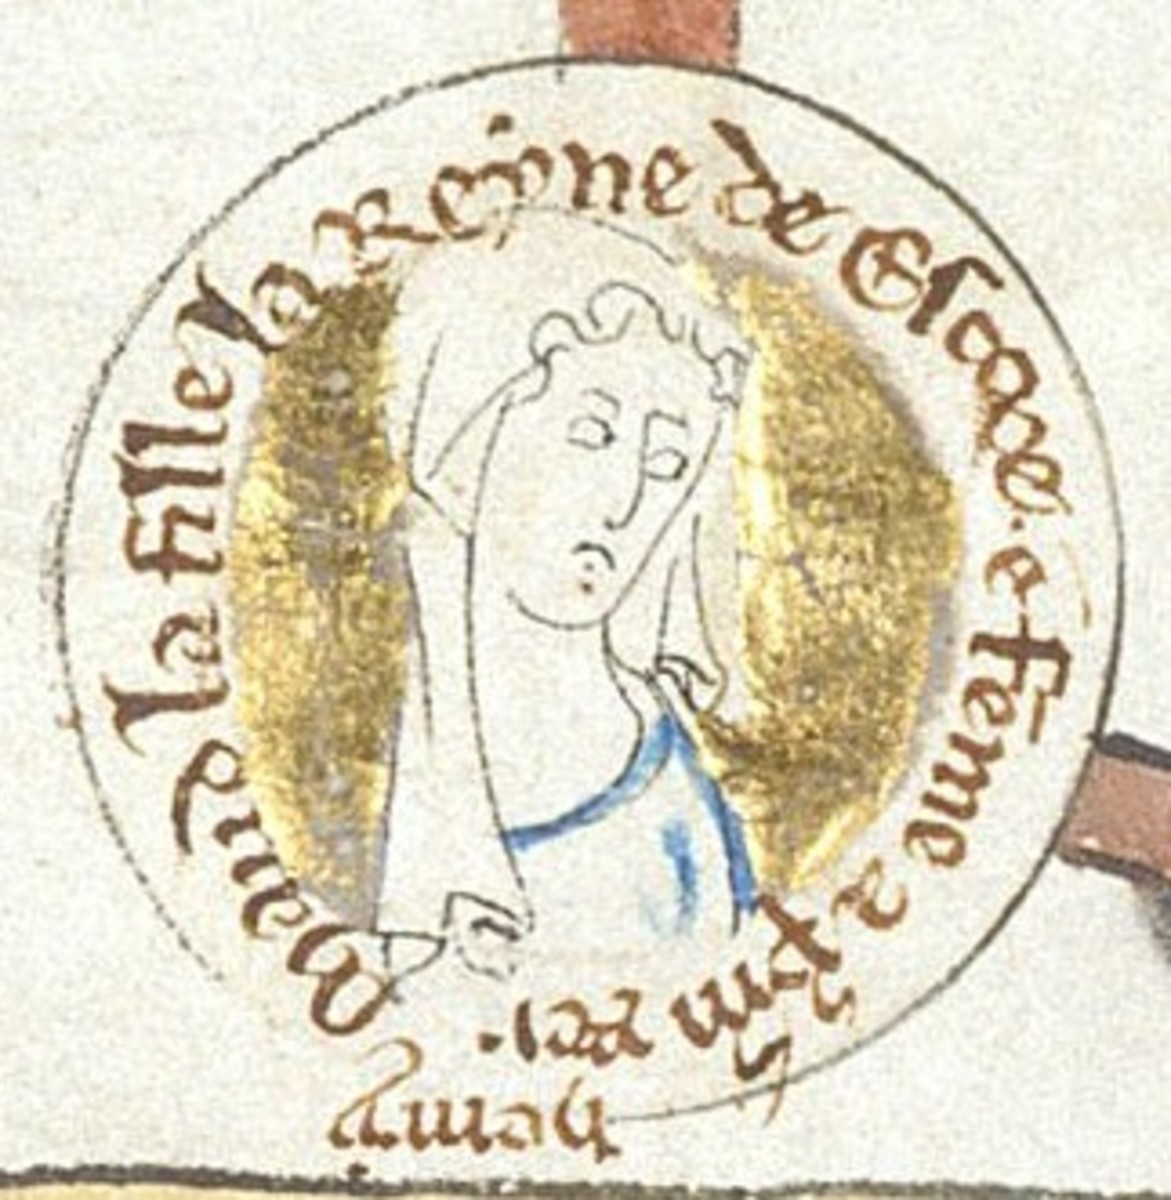 13th century depiction of Matilda.